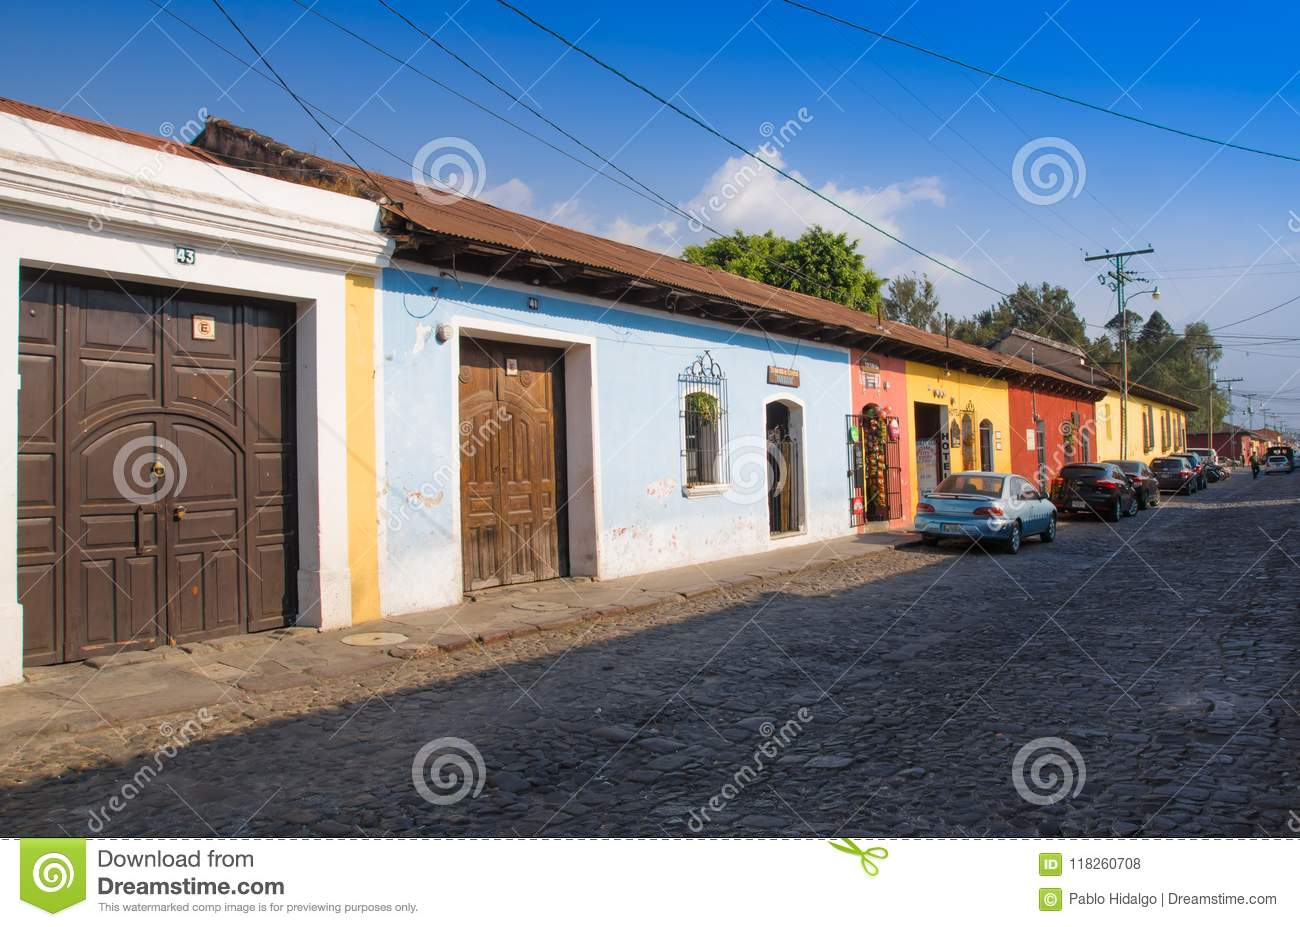 Outdoor view of stoned street with some old building houses and the historic city Antigua is UNESCO World Heritage Site